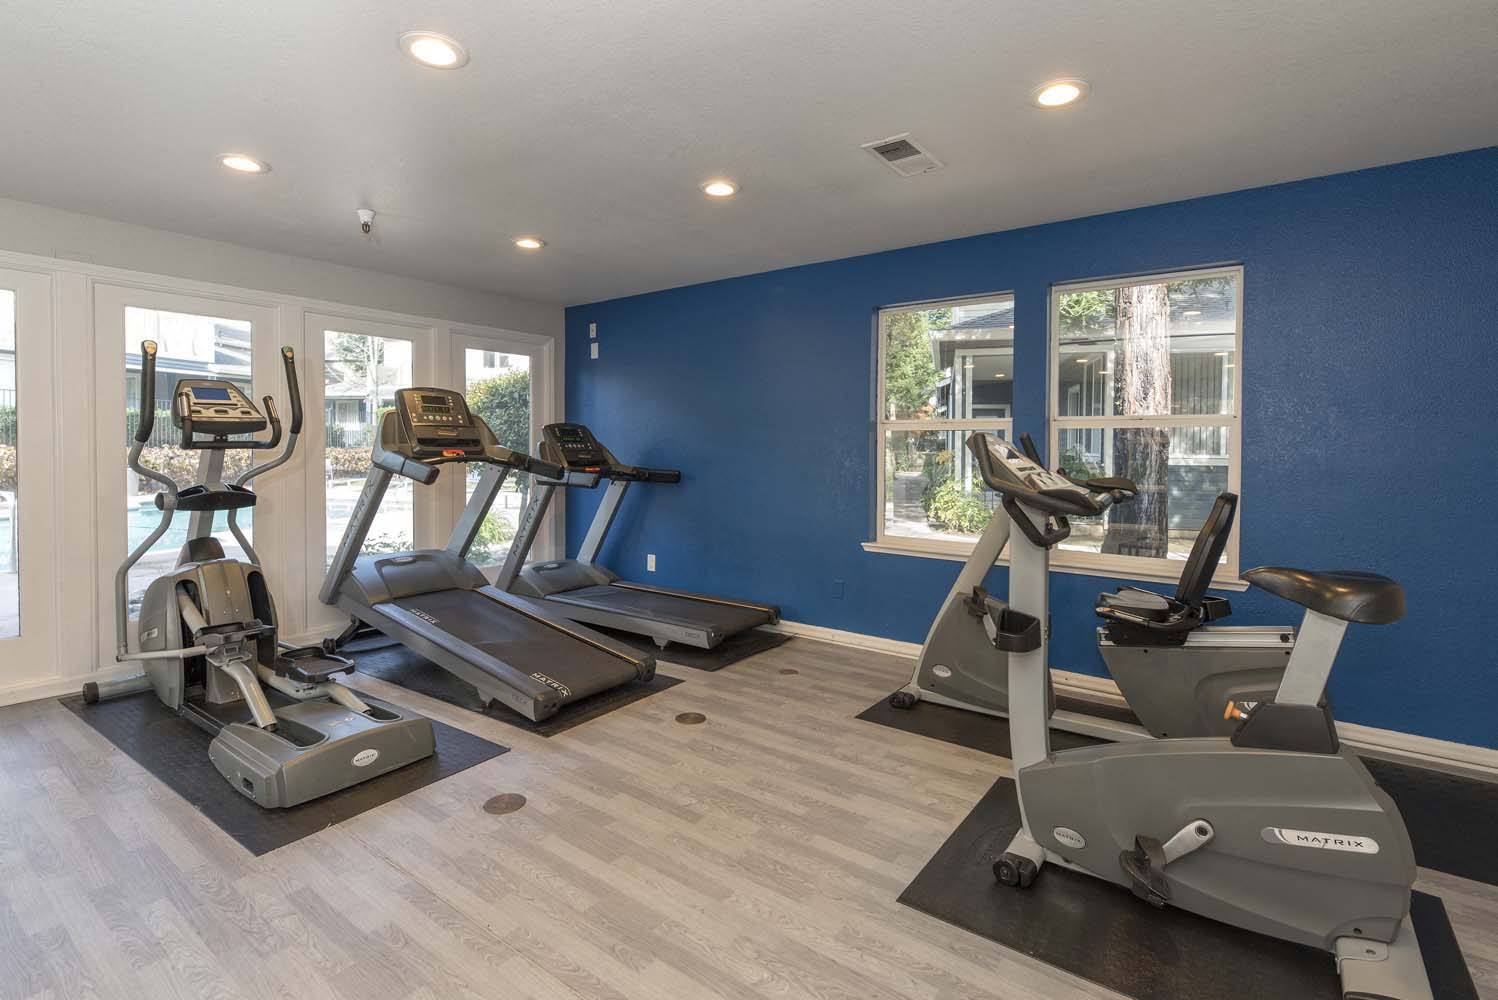 Cardio Machines In Gym at Atwood Apartments, Citrus Heights, CA